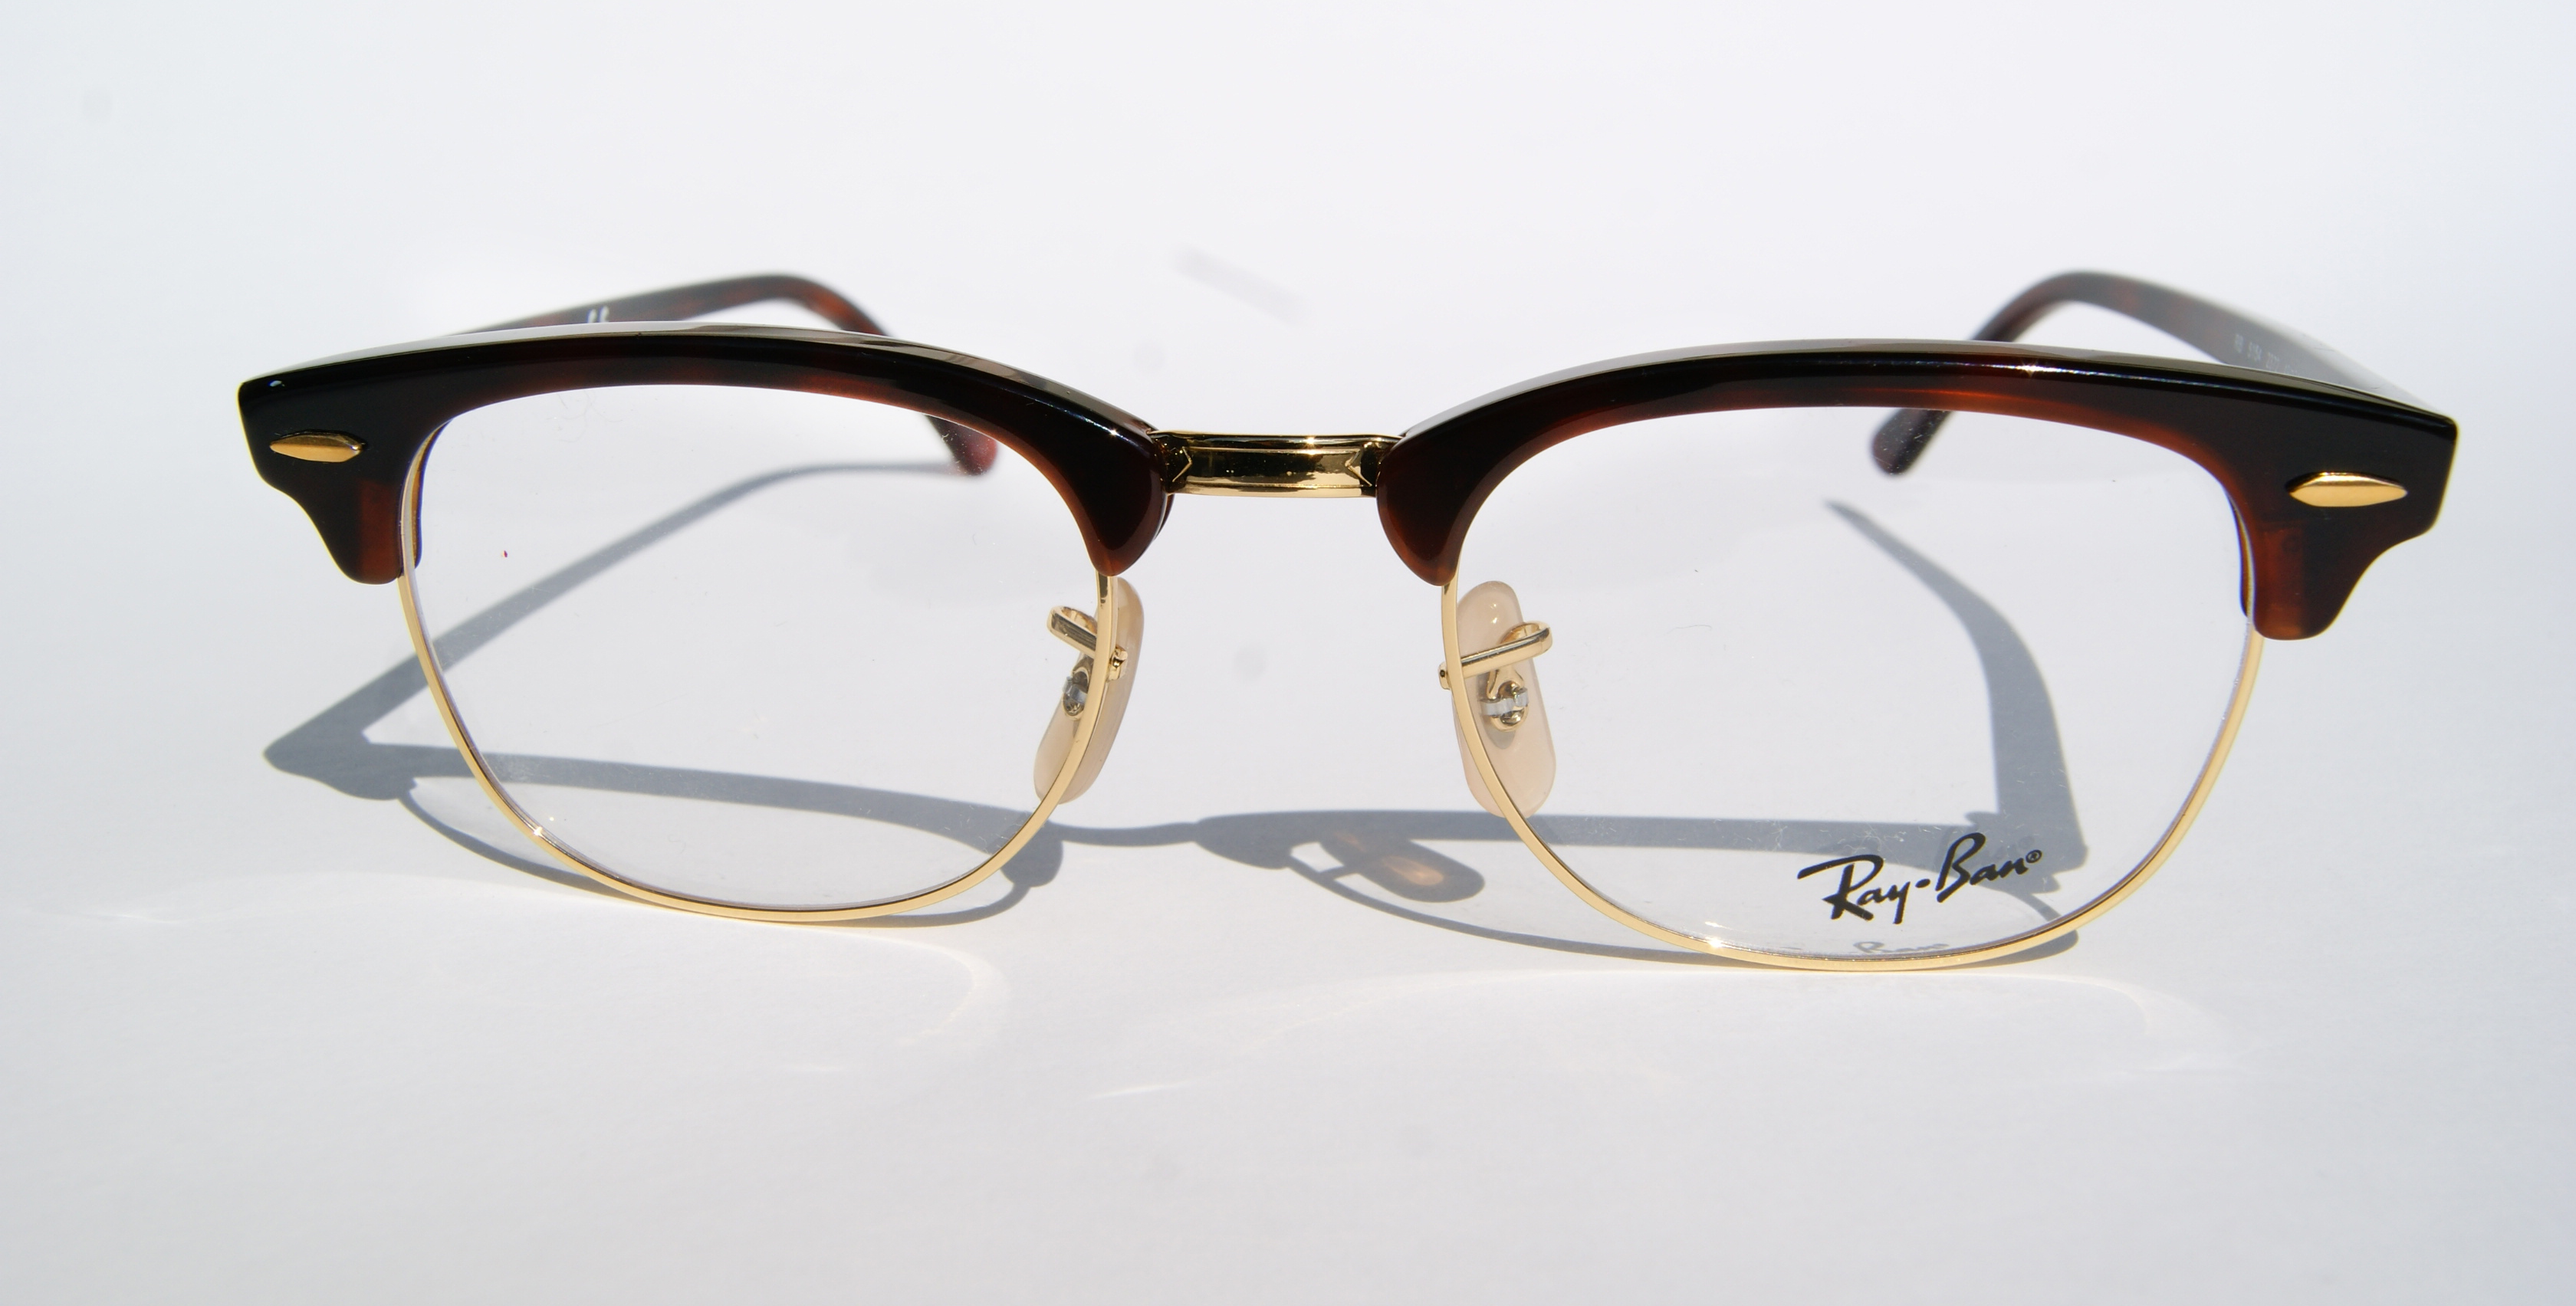 Haddonfield Eyewear | New Arrivals from Haddonfield Vision